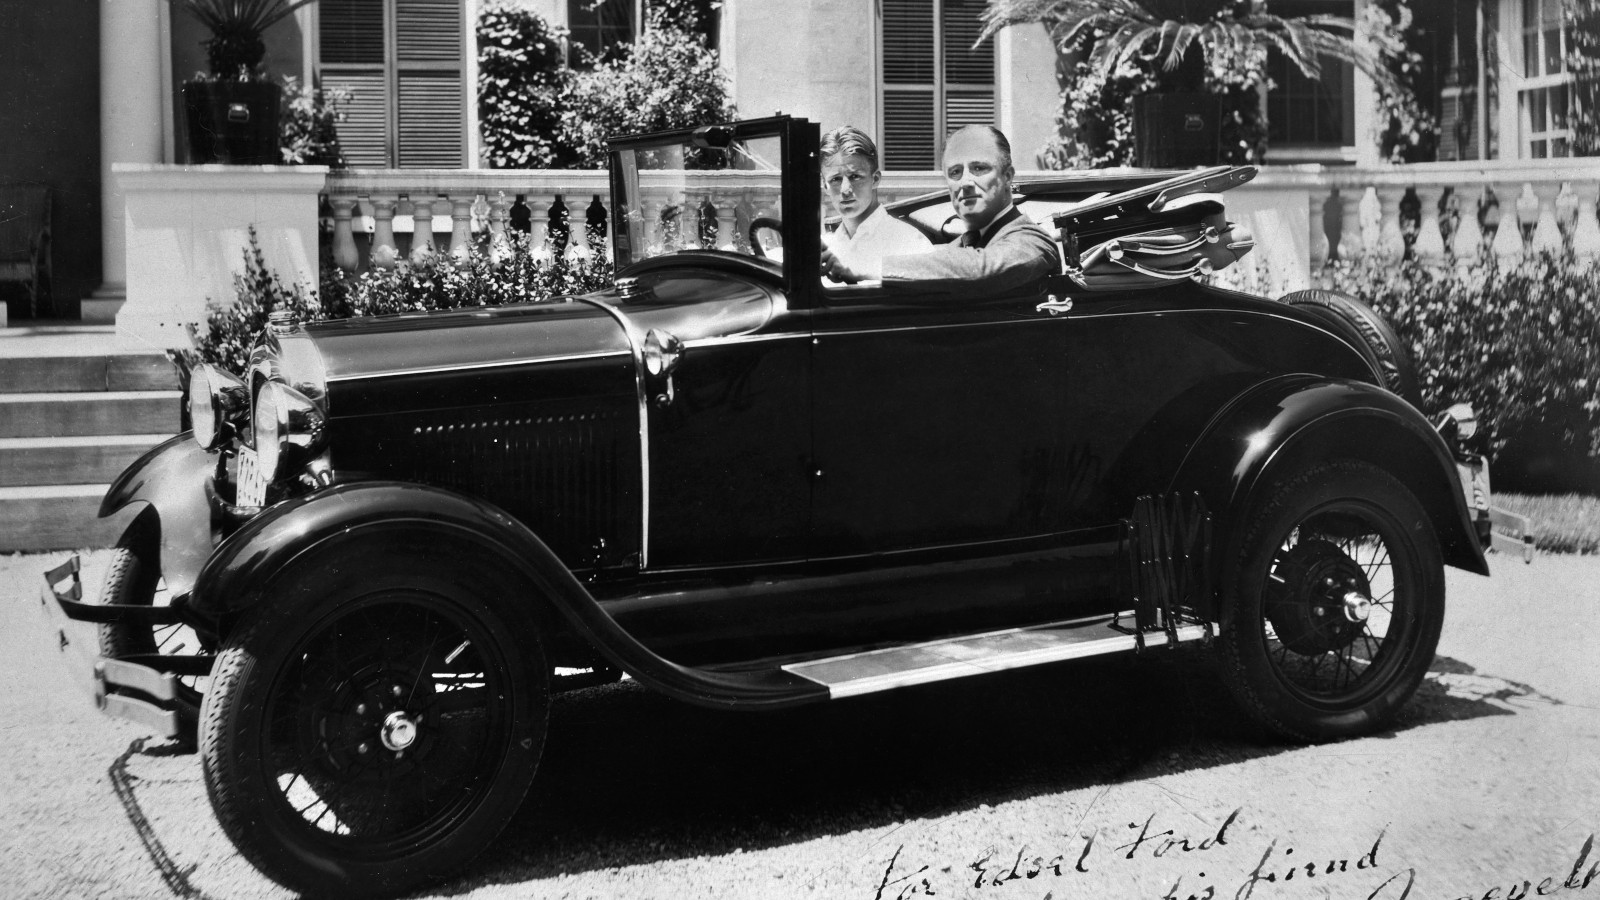 Ford Model A: the American classic that beat the Great Depression